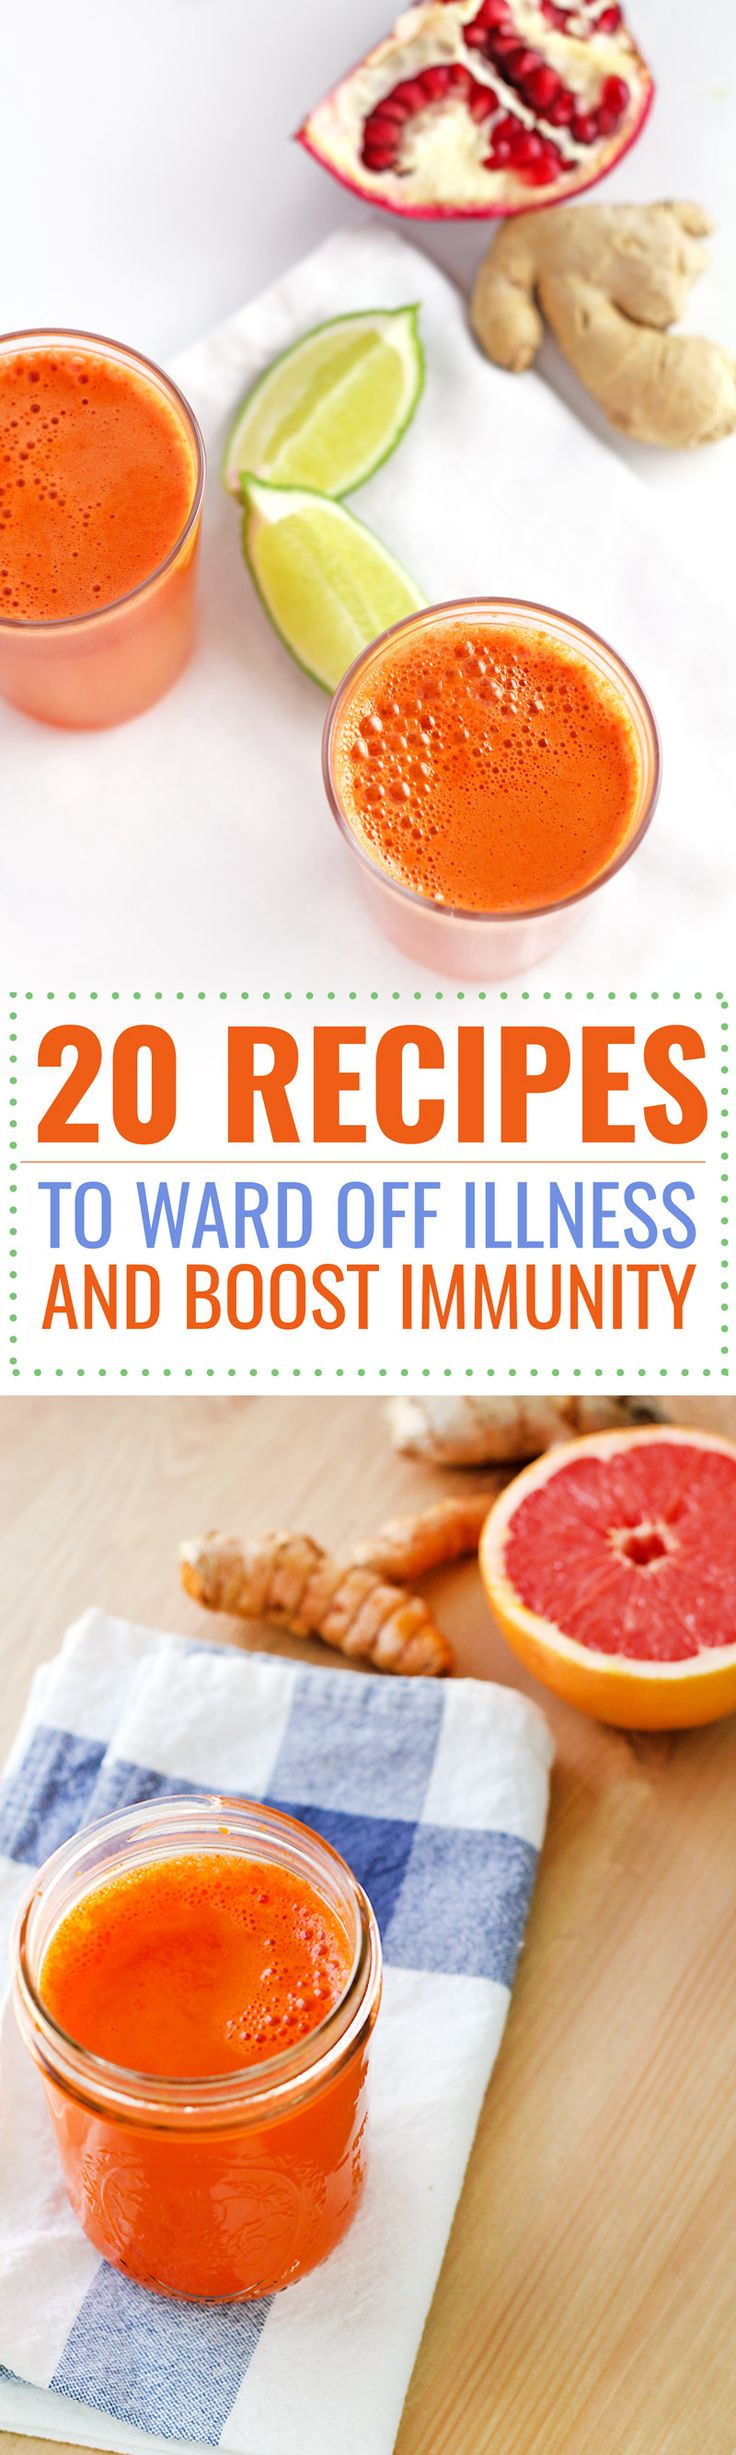 20 recipes to ward off illness and boost immunity!! Including chicken soups, vegetarian soups, and a variety of juices and tonics to boost immunity!